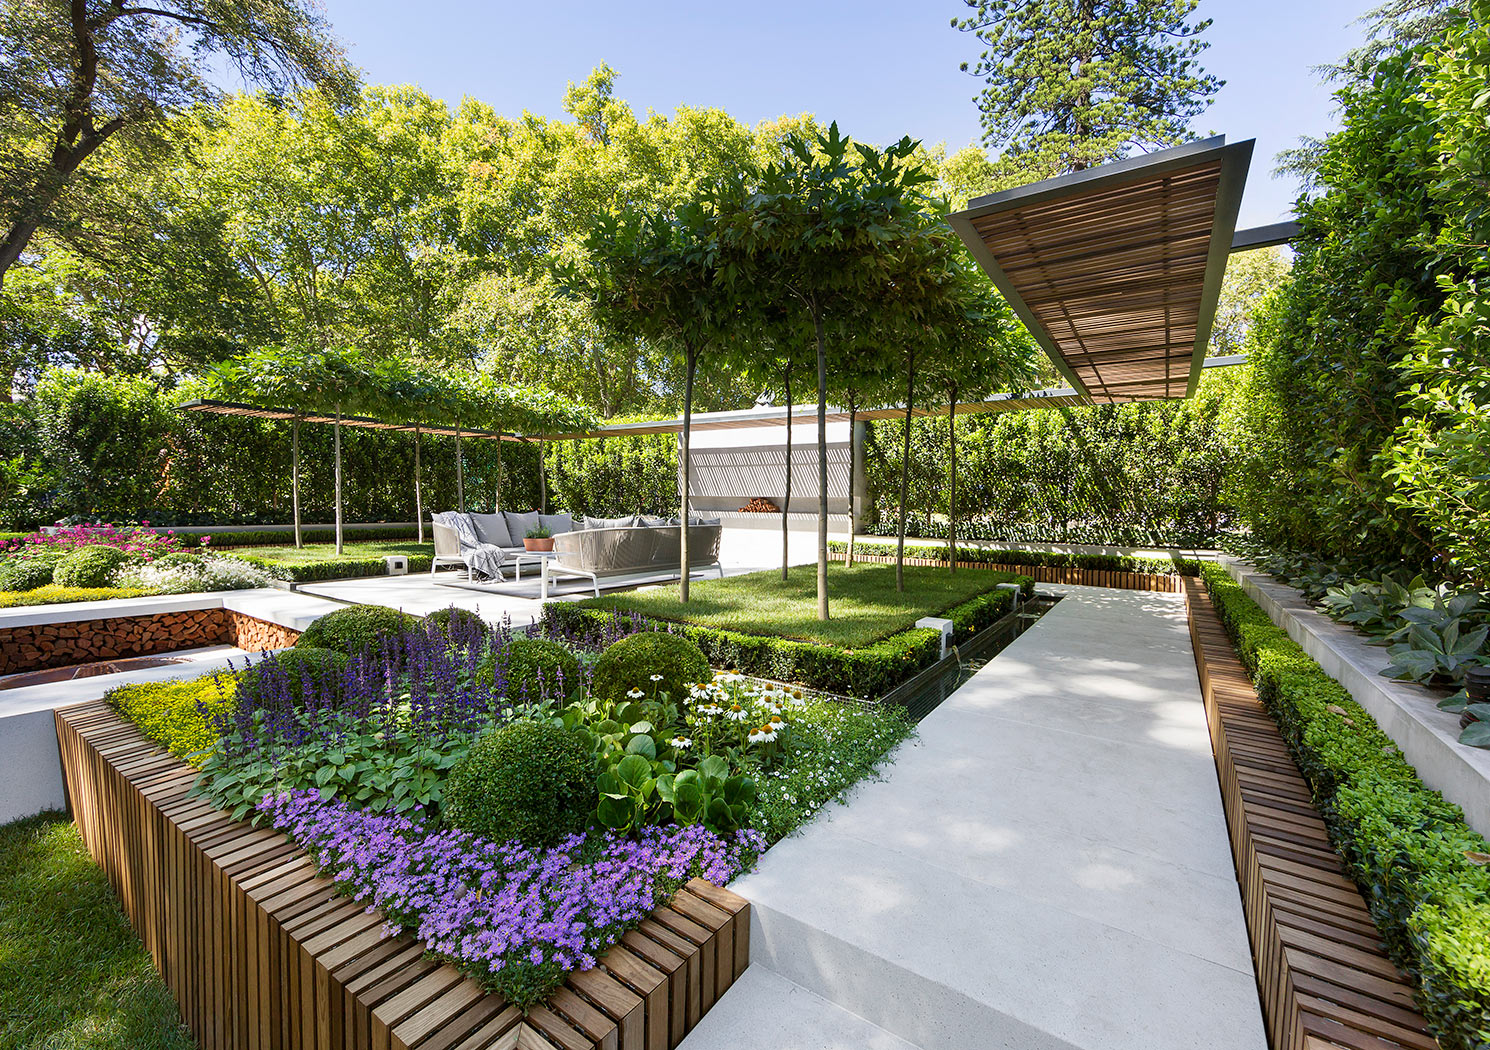 Landscape design melbourne nathan burkett design for Garden design home garden